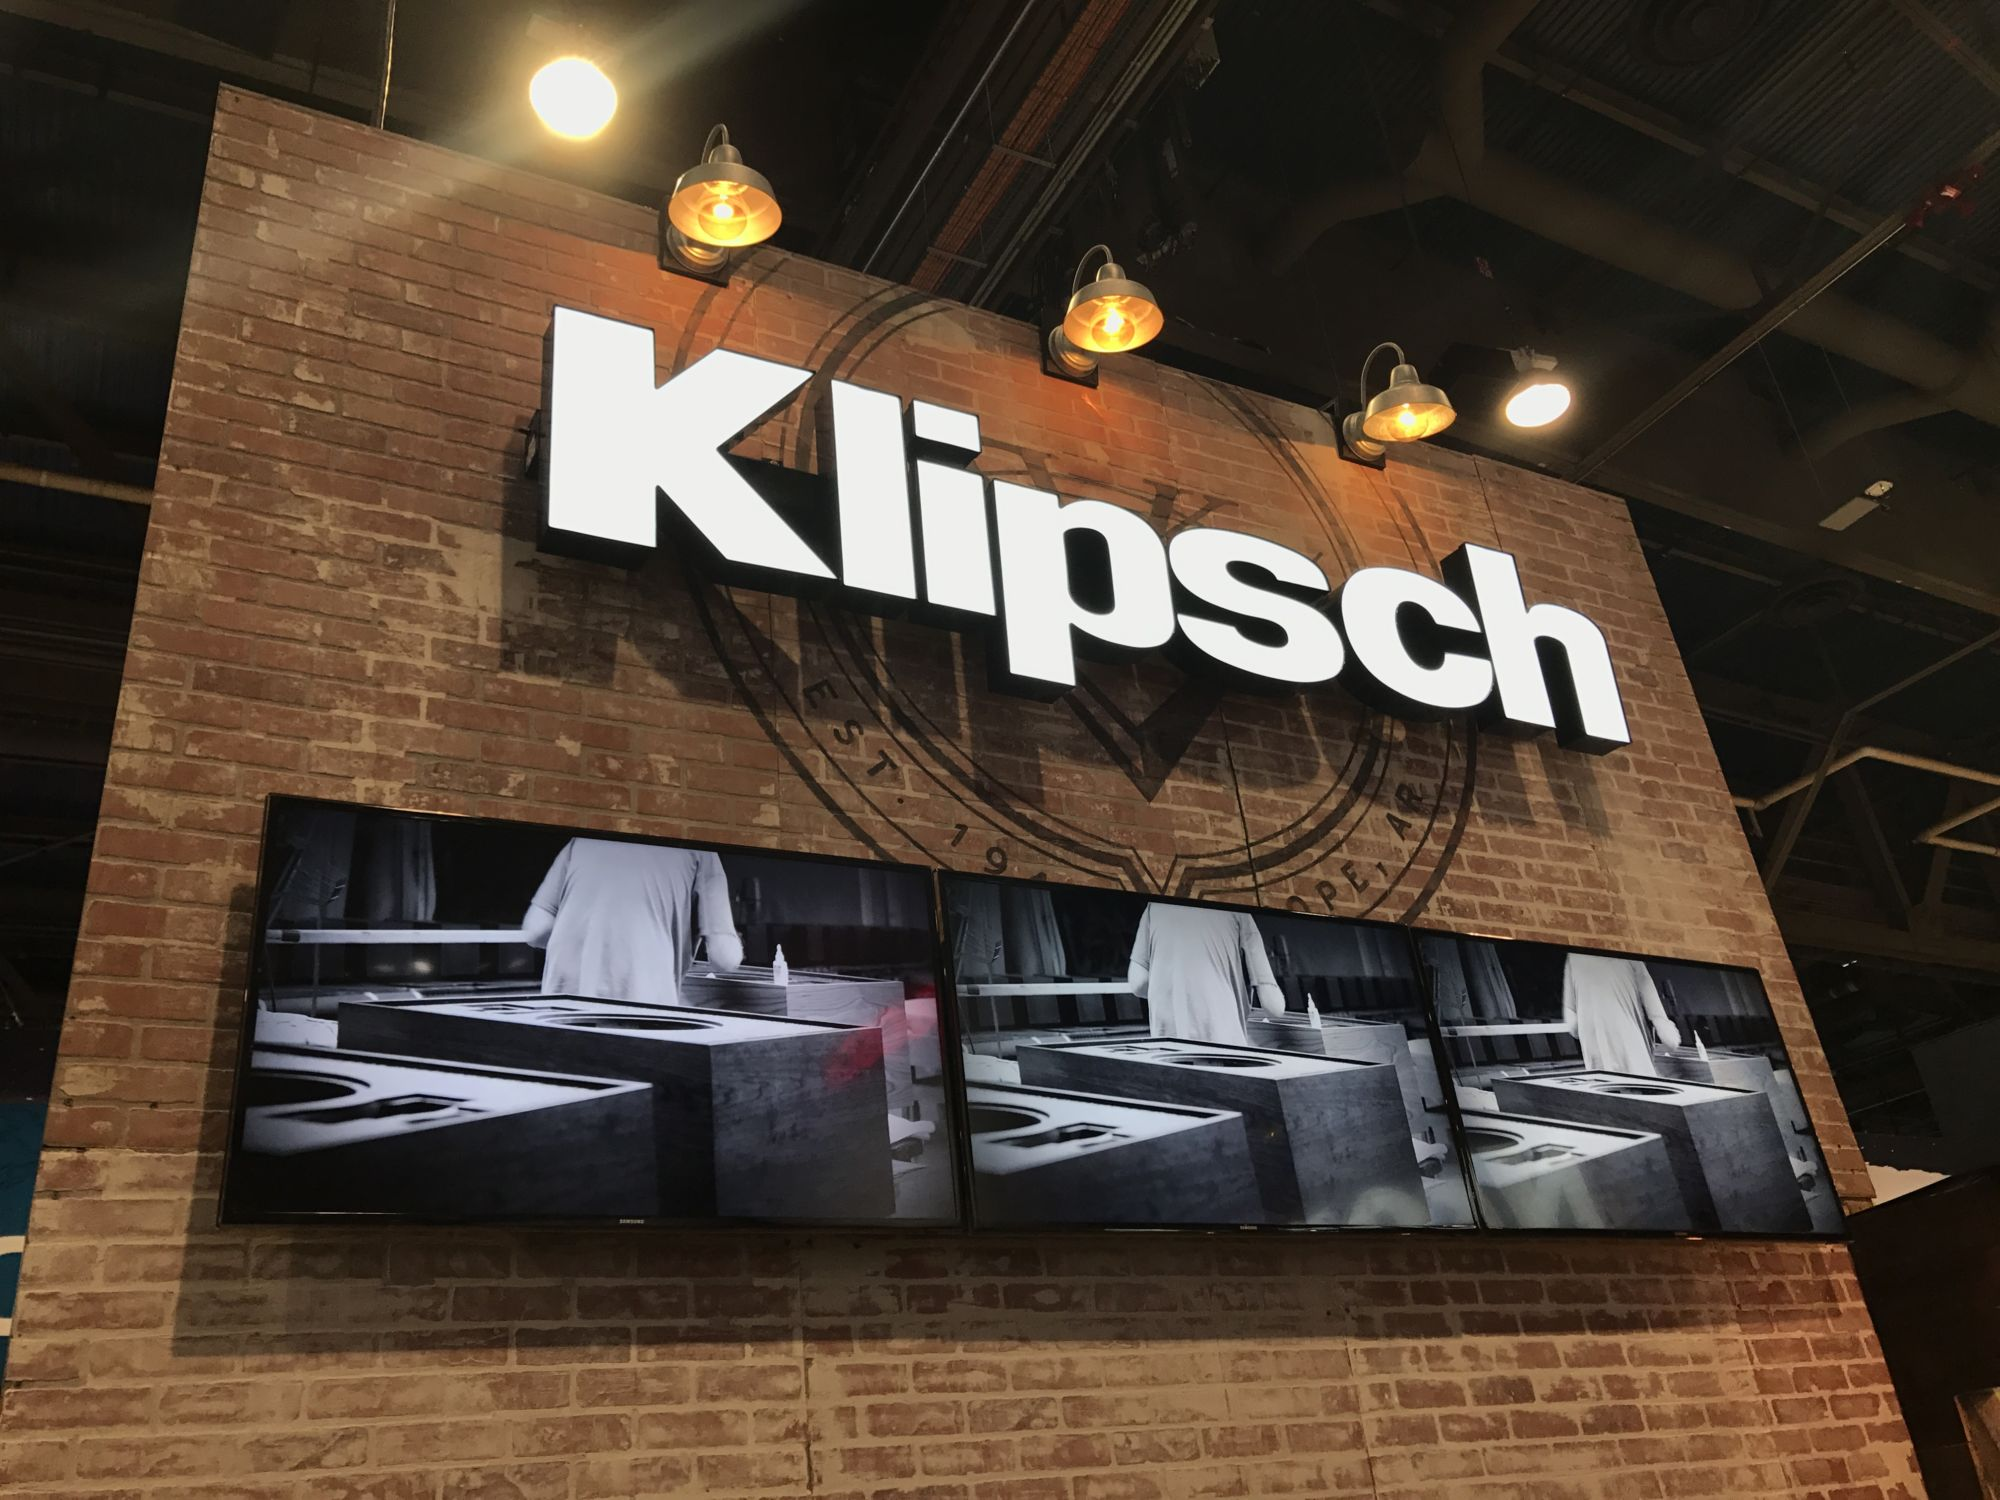 Klipsch logo sign at a convention